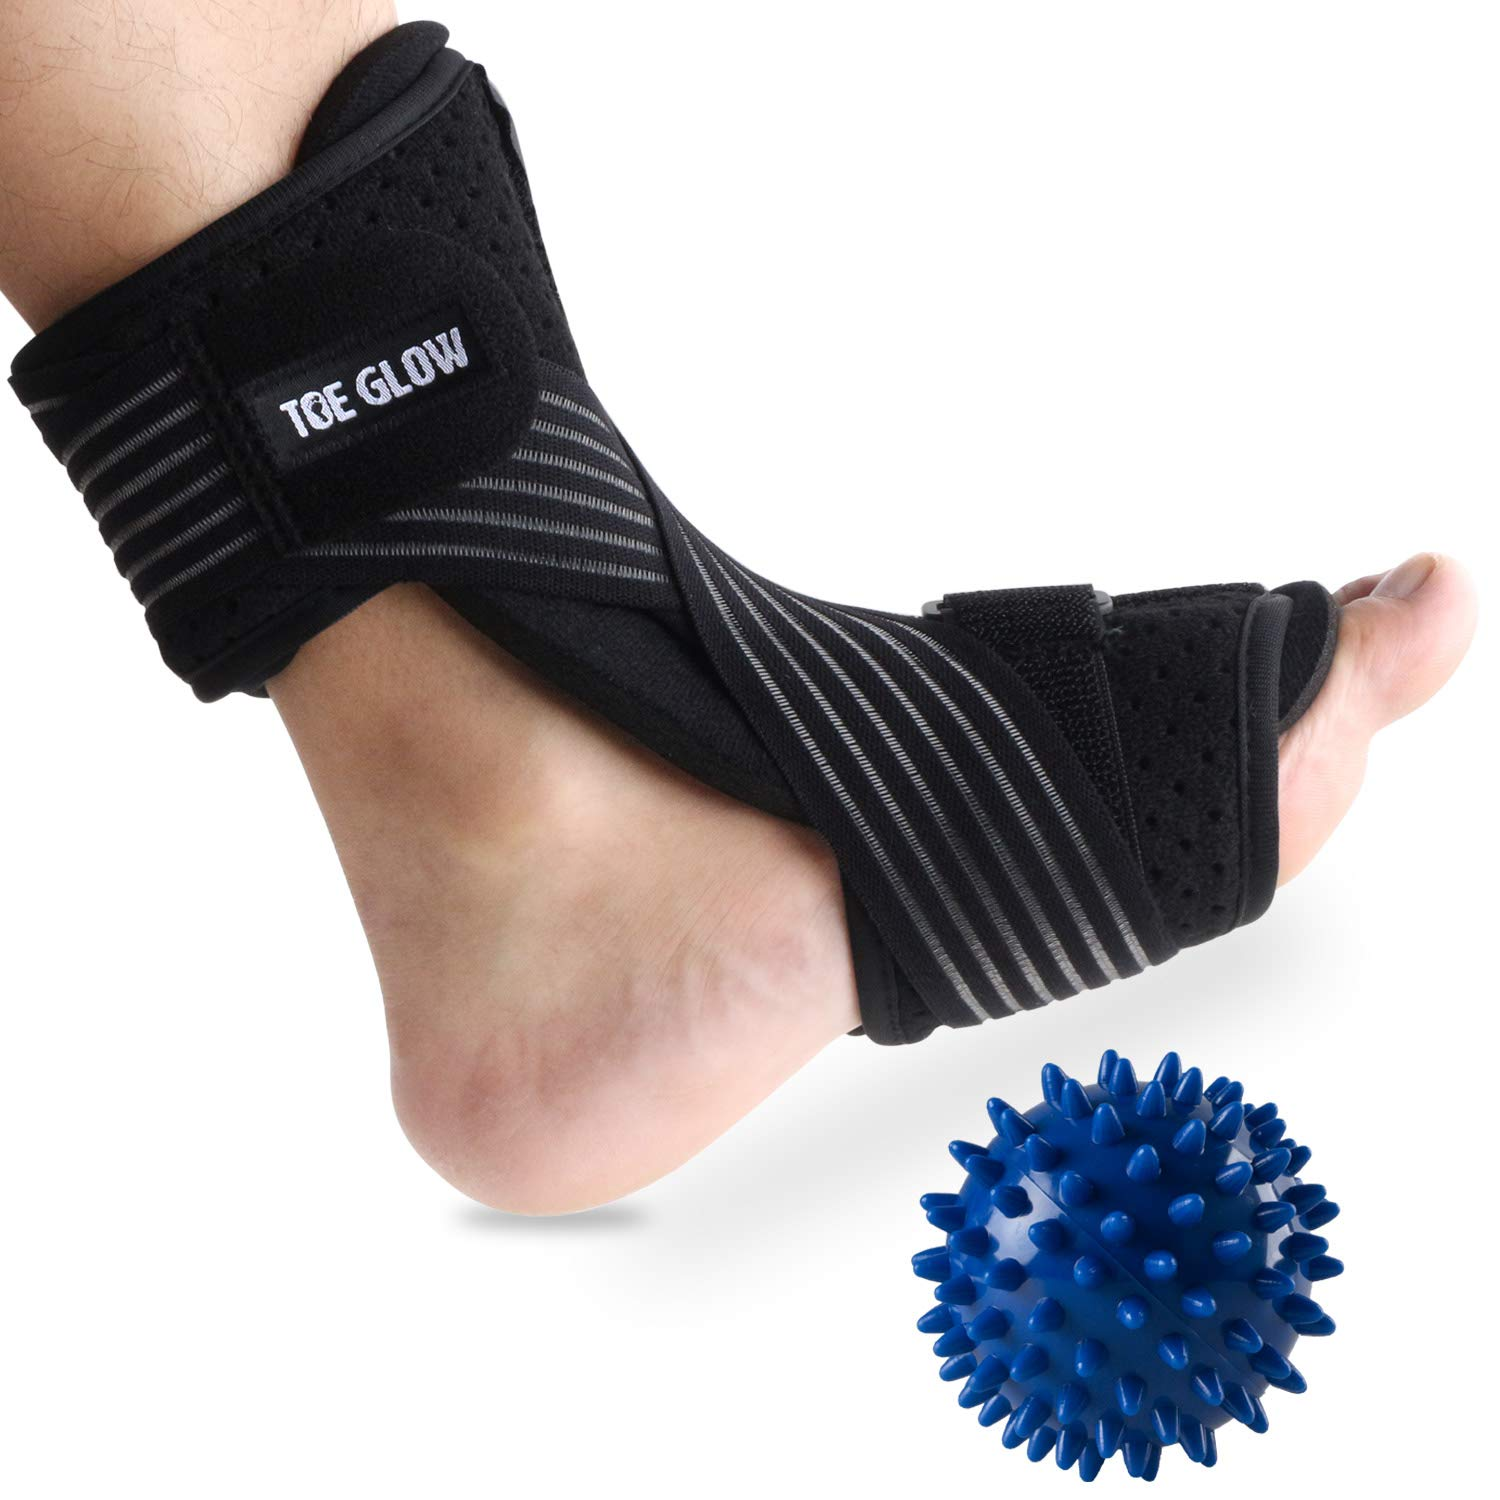 Plantar Fasciitis Night Splint Foot Drop Orthotic Supports Kit Adjustable Dorsal Night Splint Support Sleep, Recovery, Tendonitis, Arthritis with Hard Spiky Massage Ball (Black) by Toe Glow